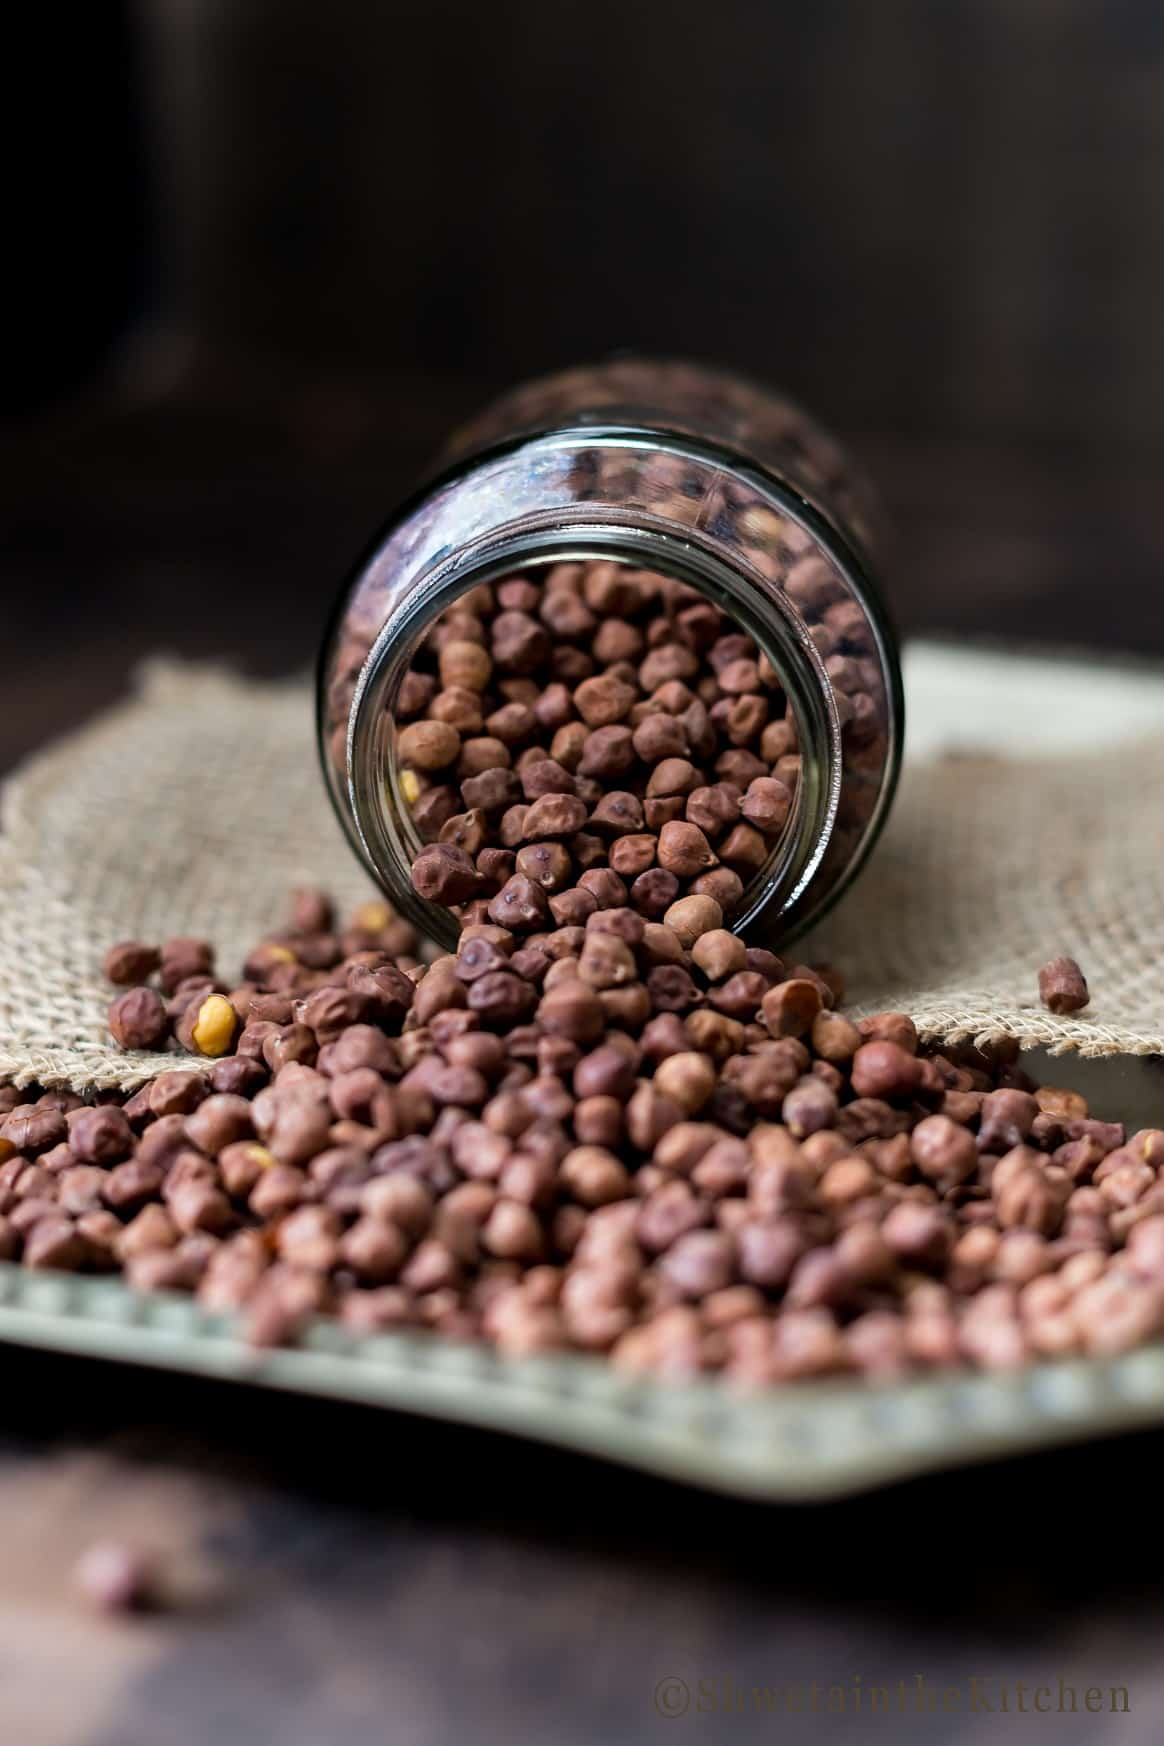 Dry black chickpeas in a jar that has fallen and the beans spilling out